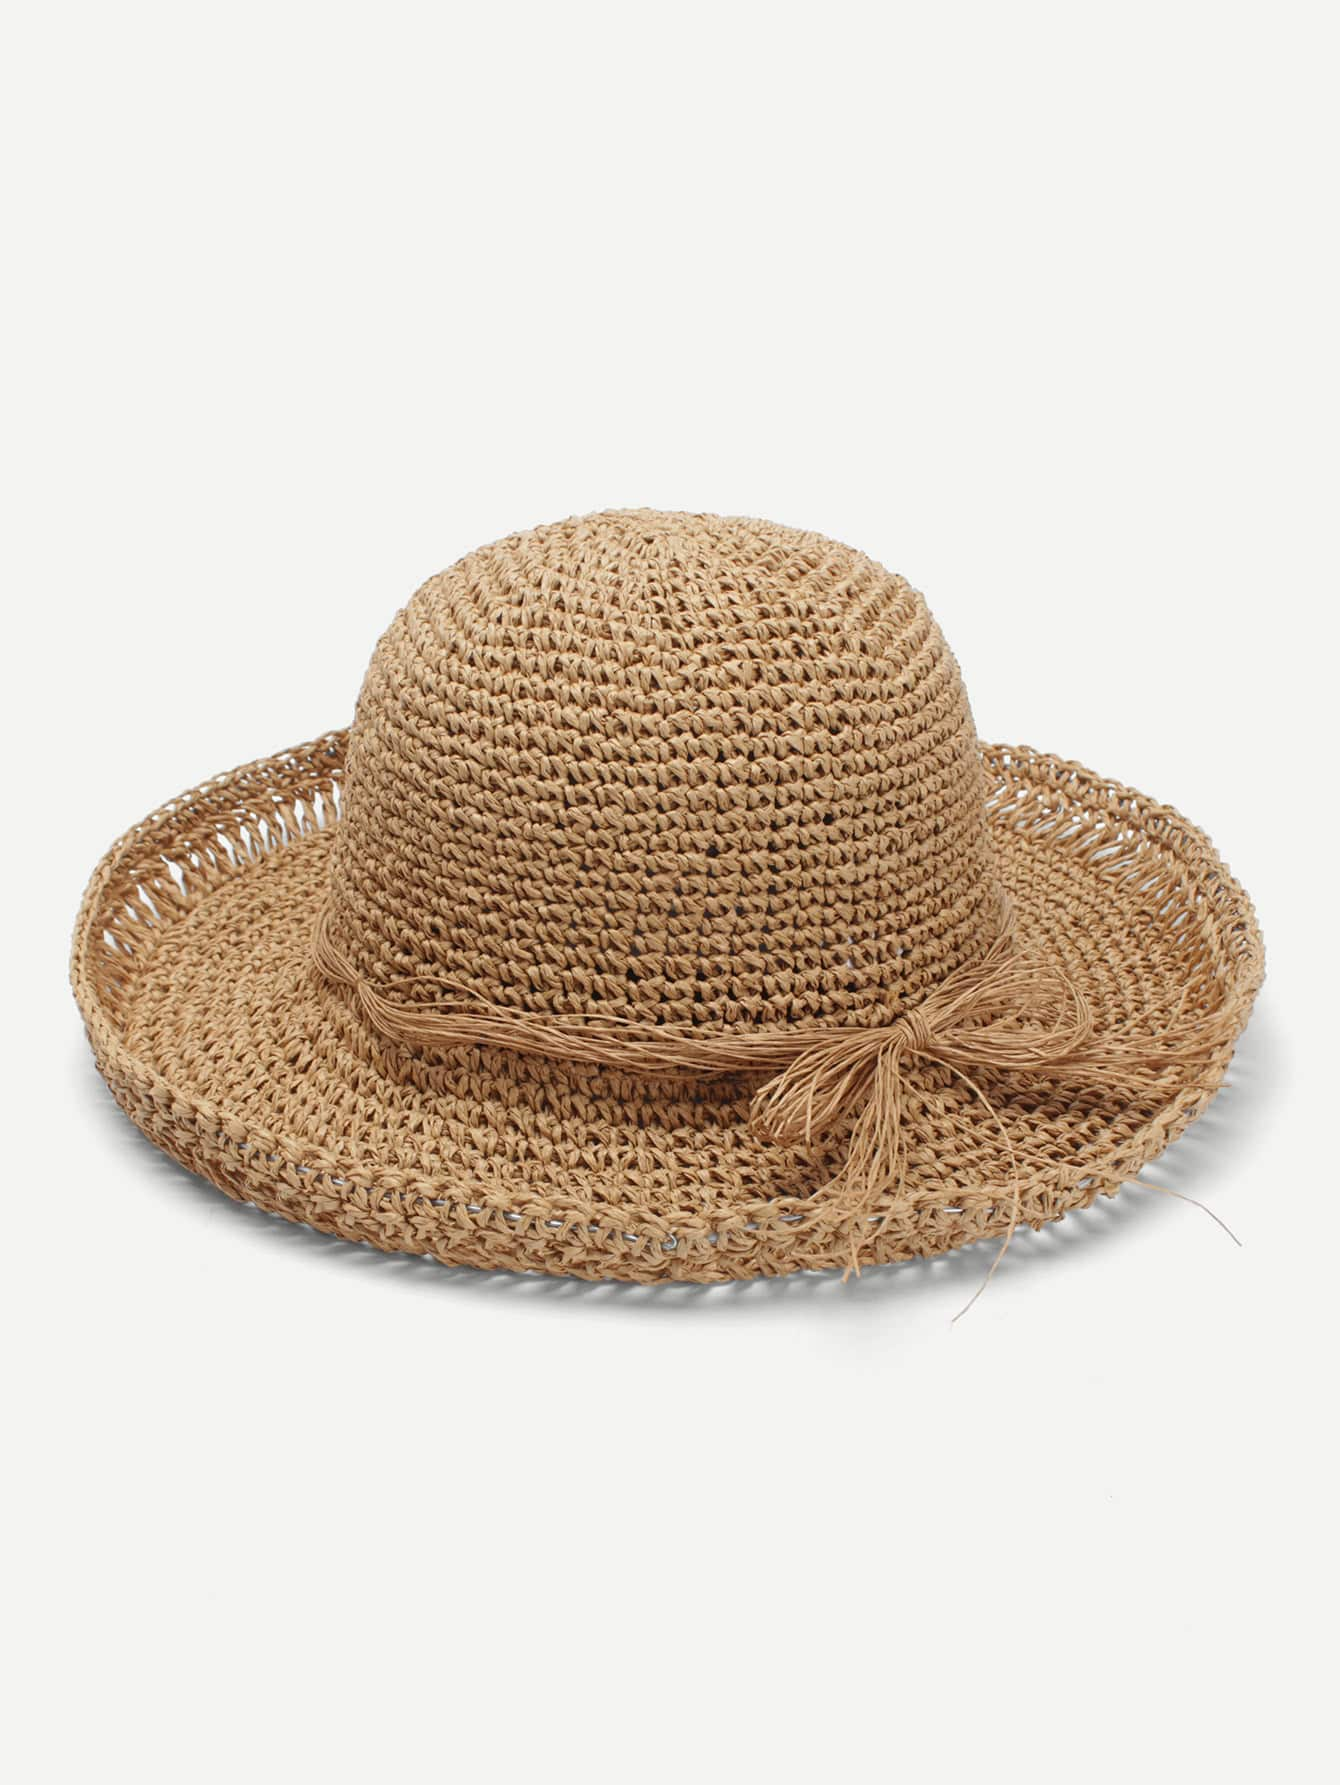 Bow Band Straw Boater Hat knot band straw hat